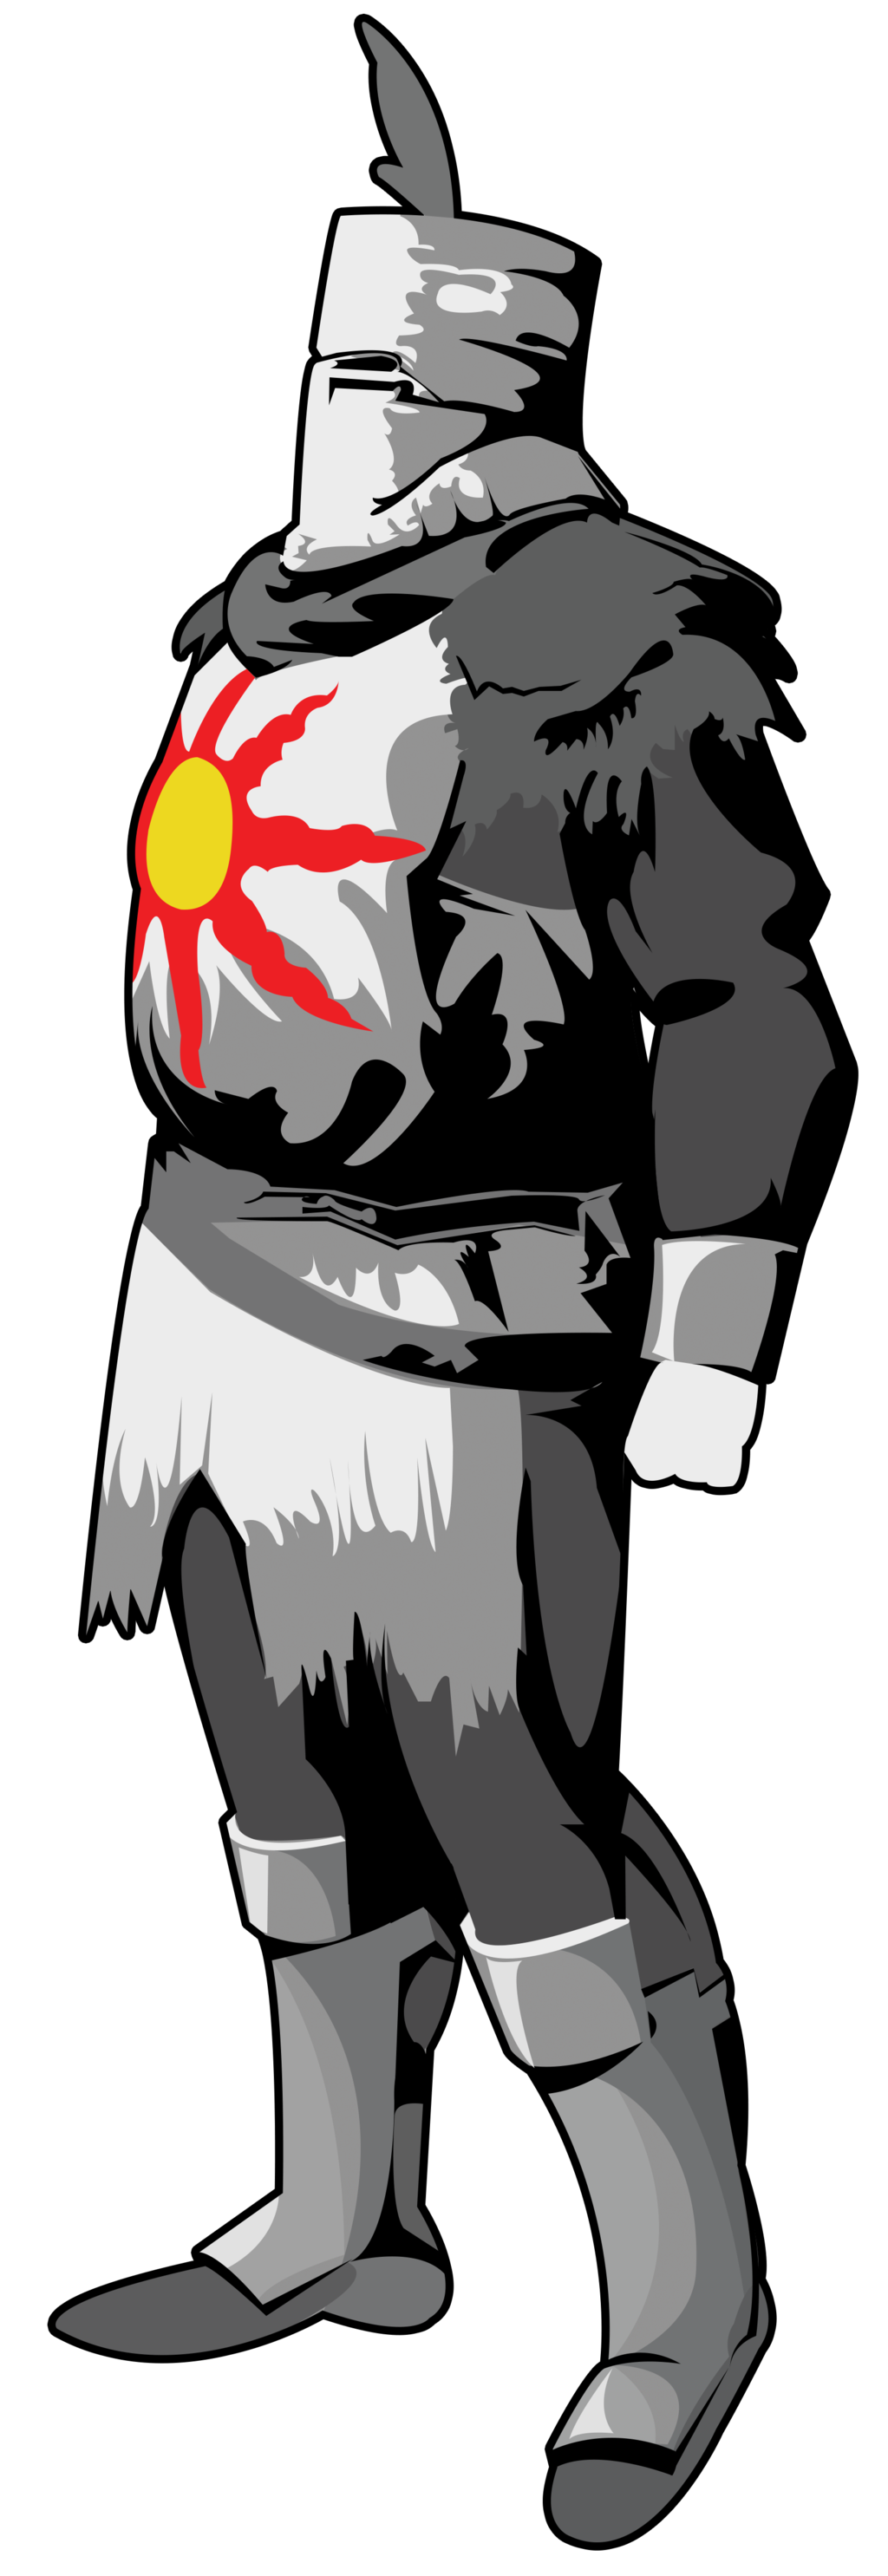 Solaire By Gg Youdied On Deviantart Dark Souls Dark Souls Art Dark Souls Tattoo